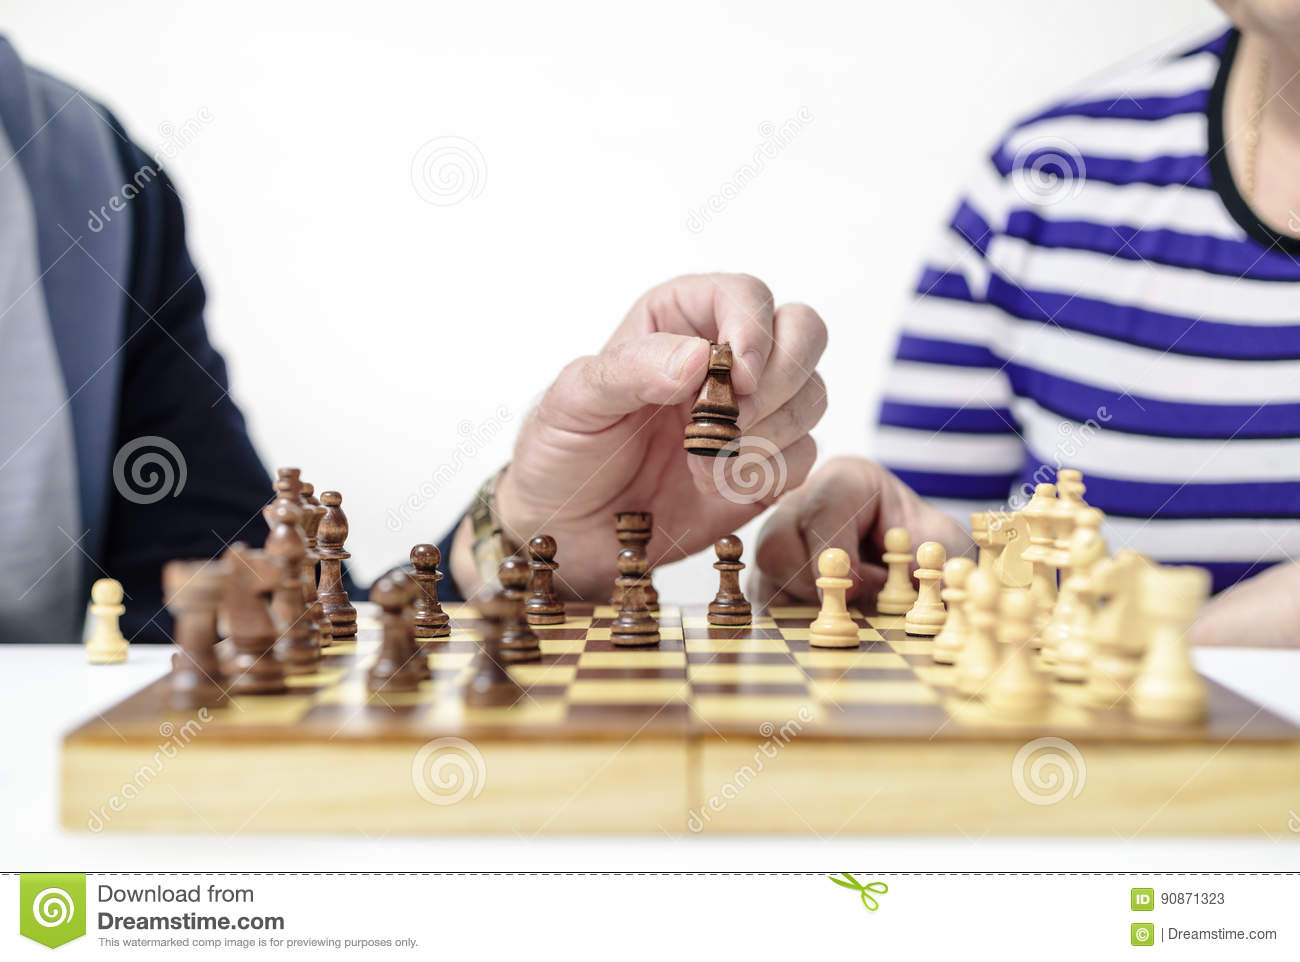 Figures on a chessboard